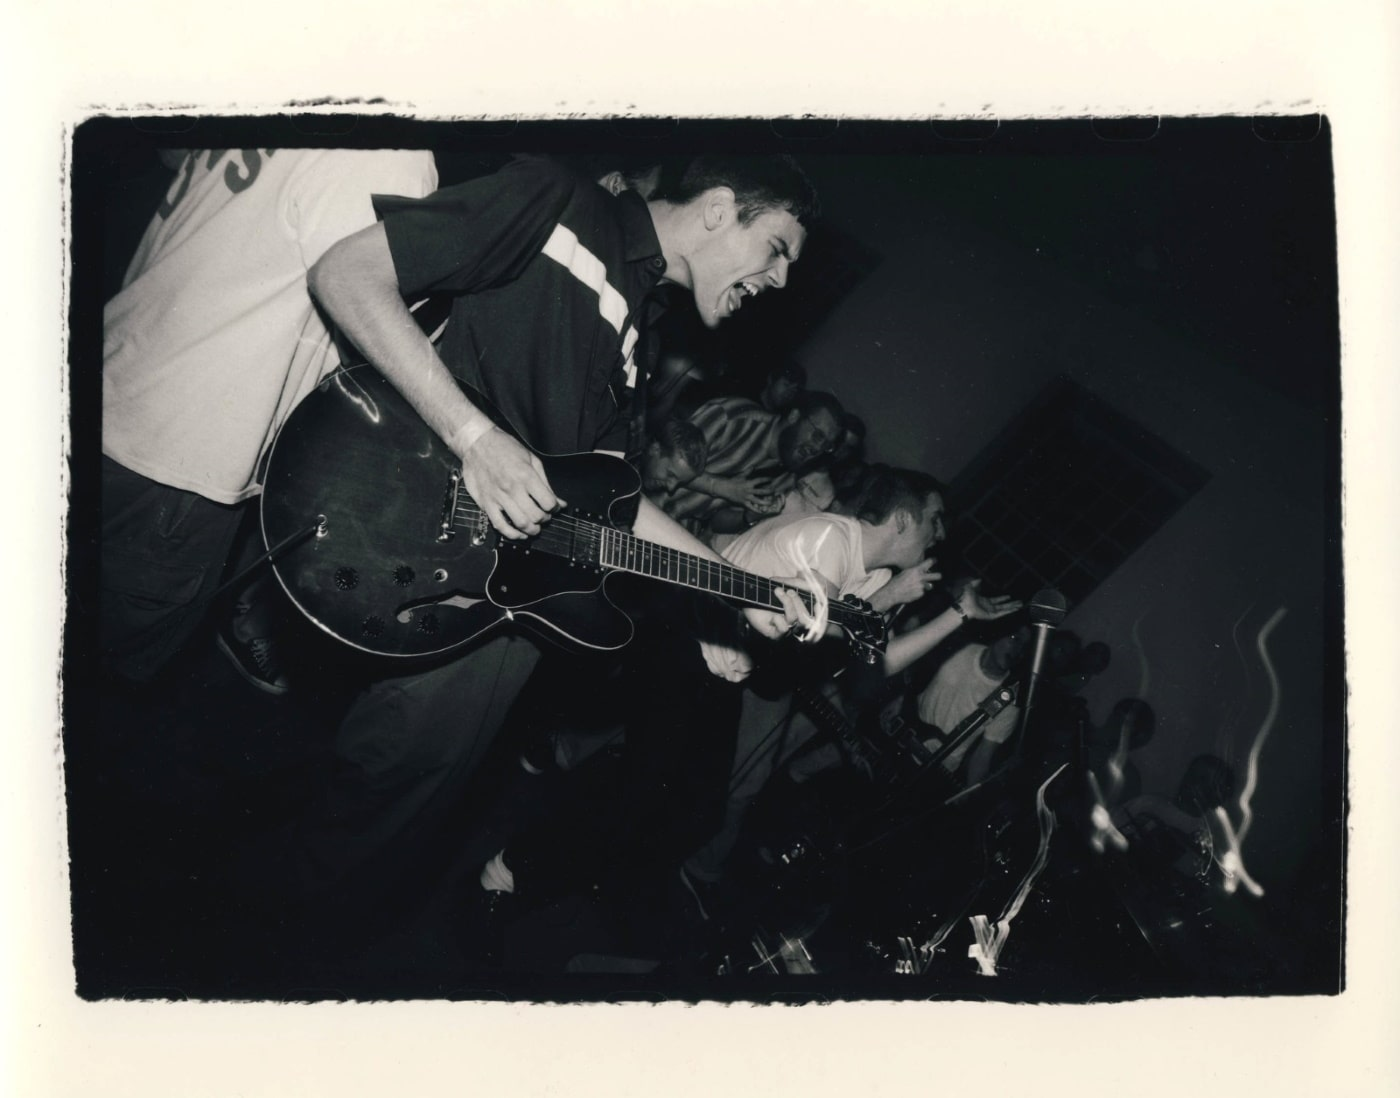 YOU AND I by Bryan Sheffield, NJ Fest, May 1998